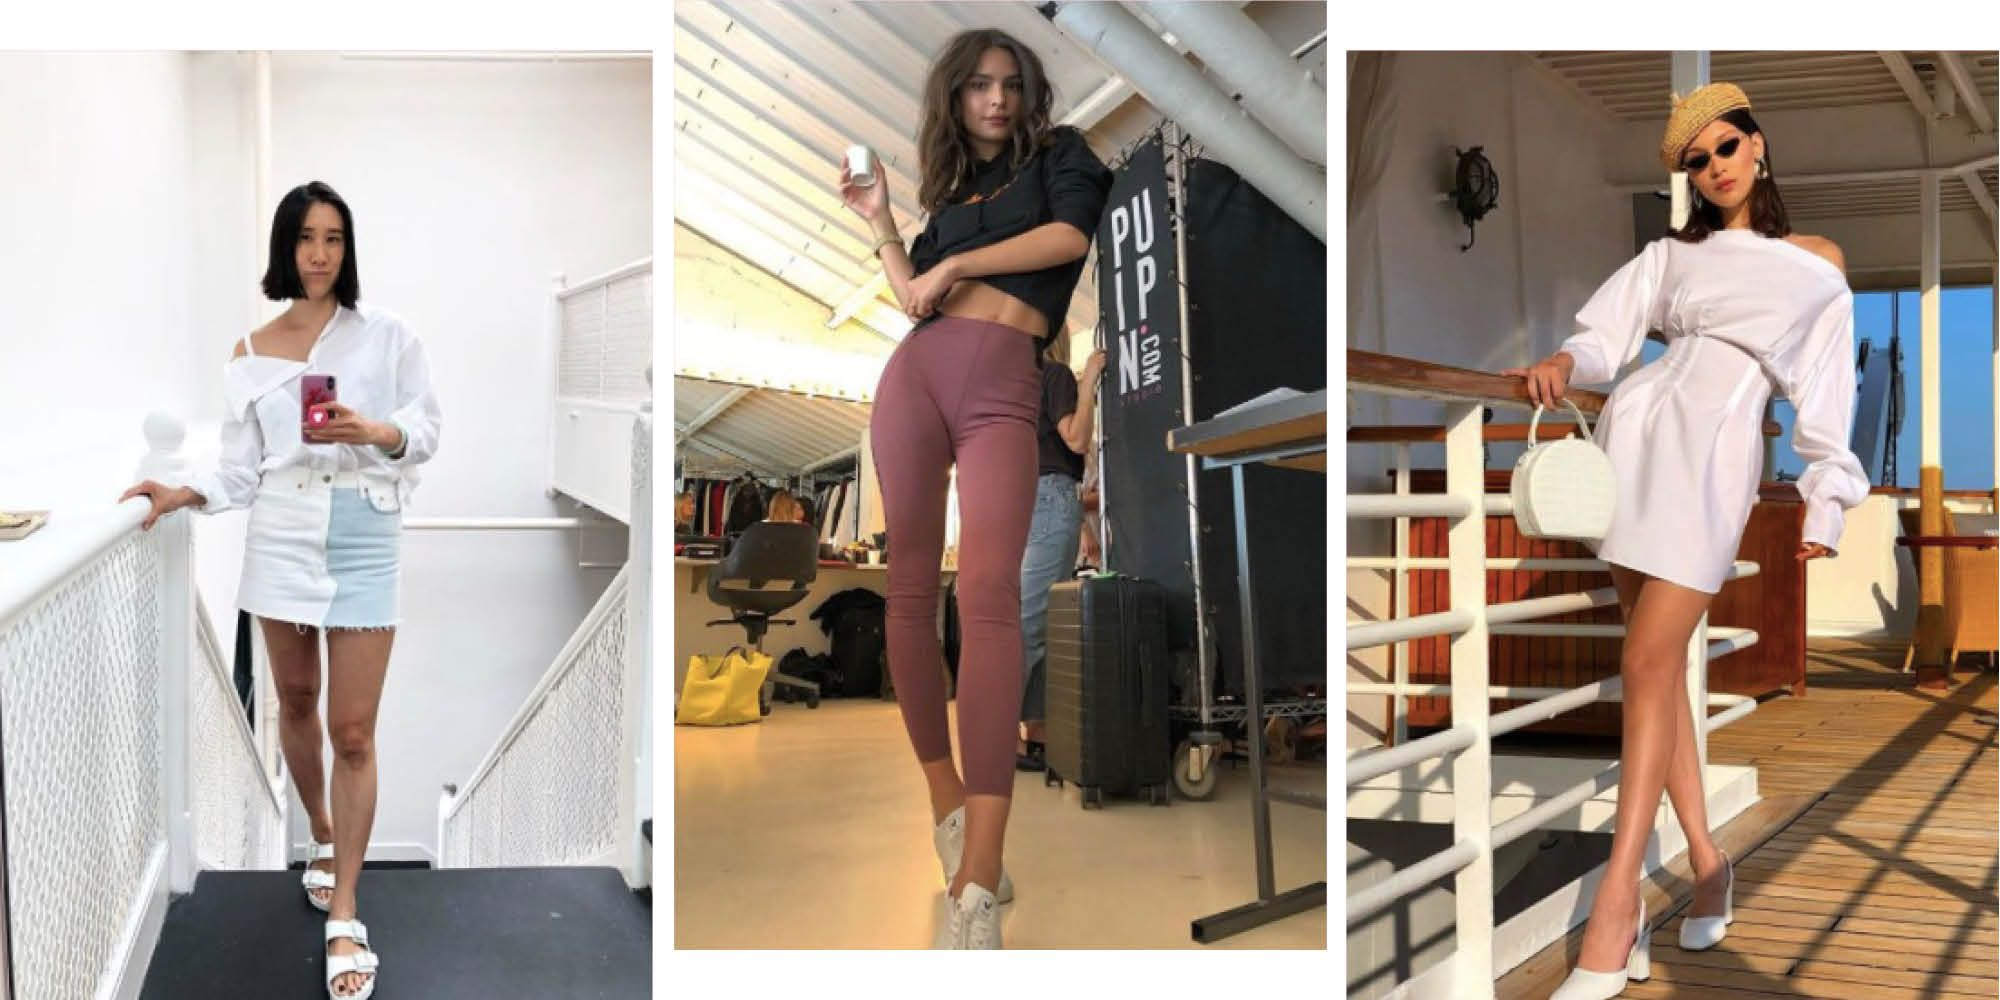 The latest Instagram pose to take over your feed